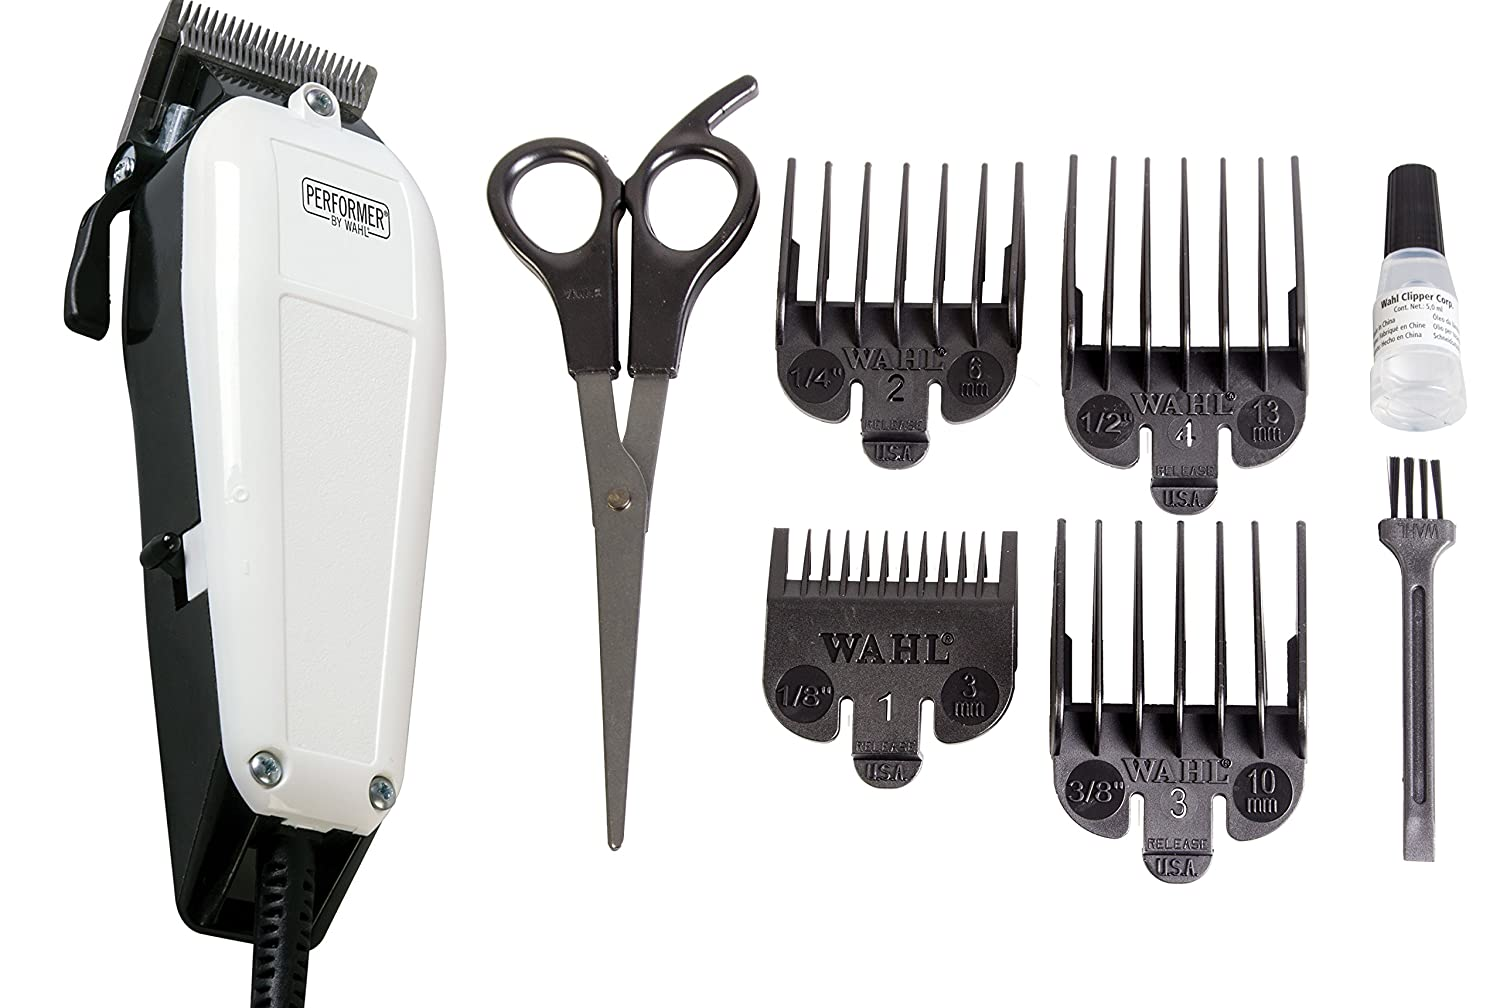 Performer by Wahl Dog/Pet Clipper 9160-800